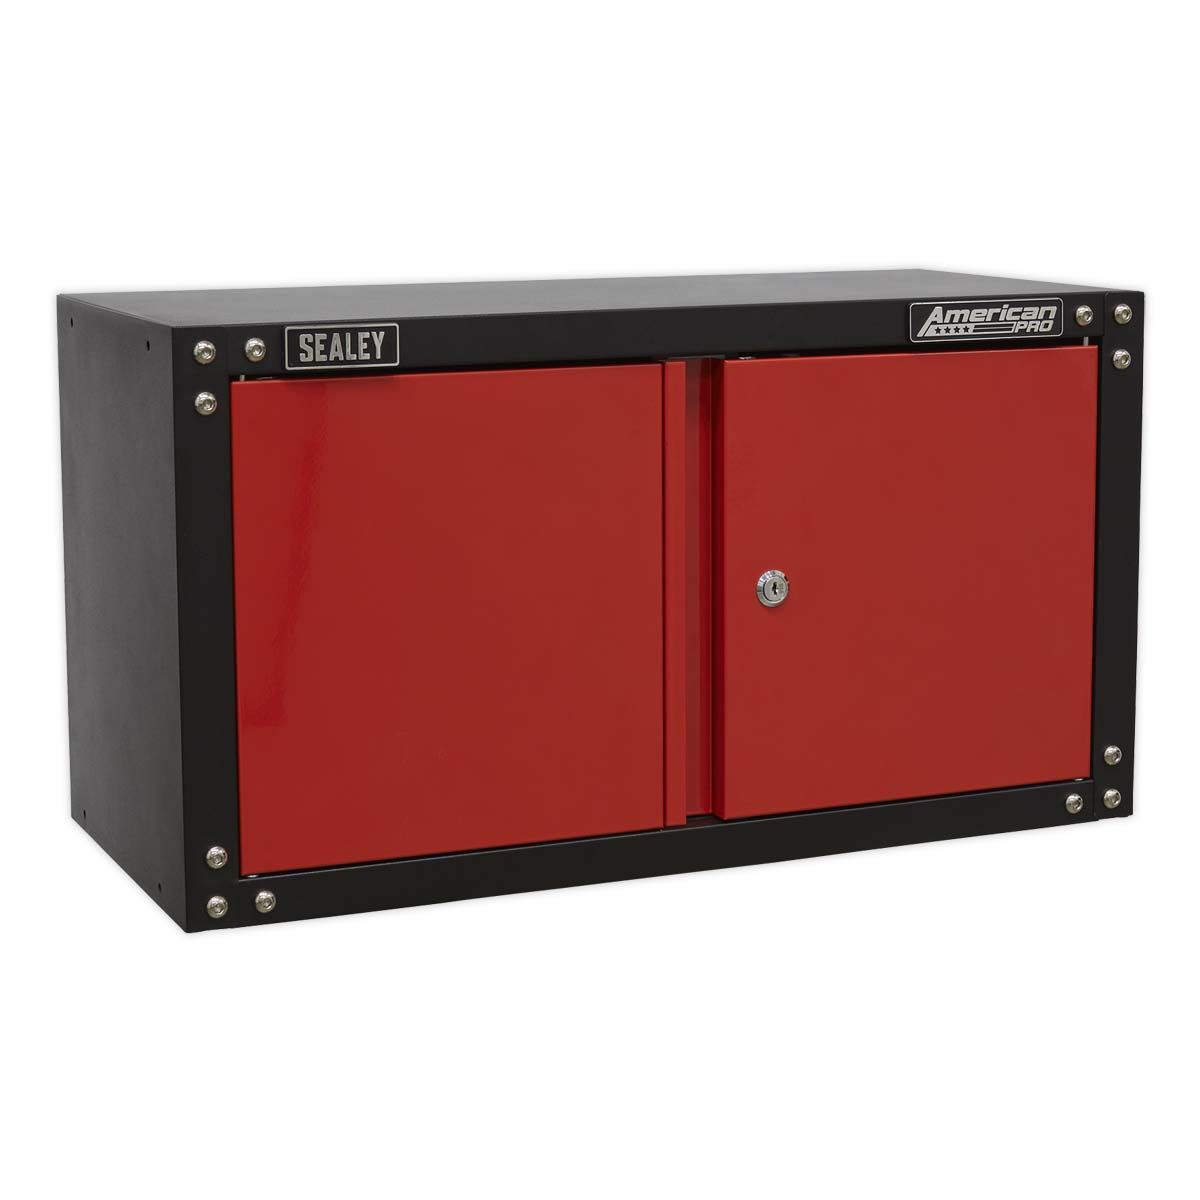 Sealey American Pro Modular 2 Door Wall Cabinet 665mm